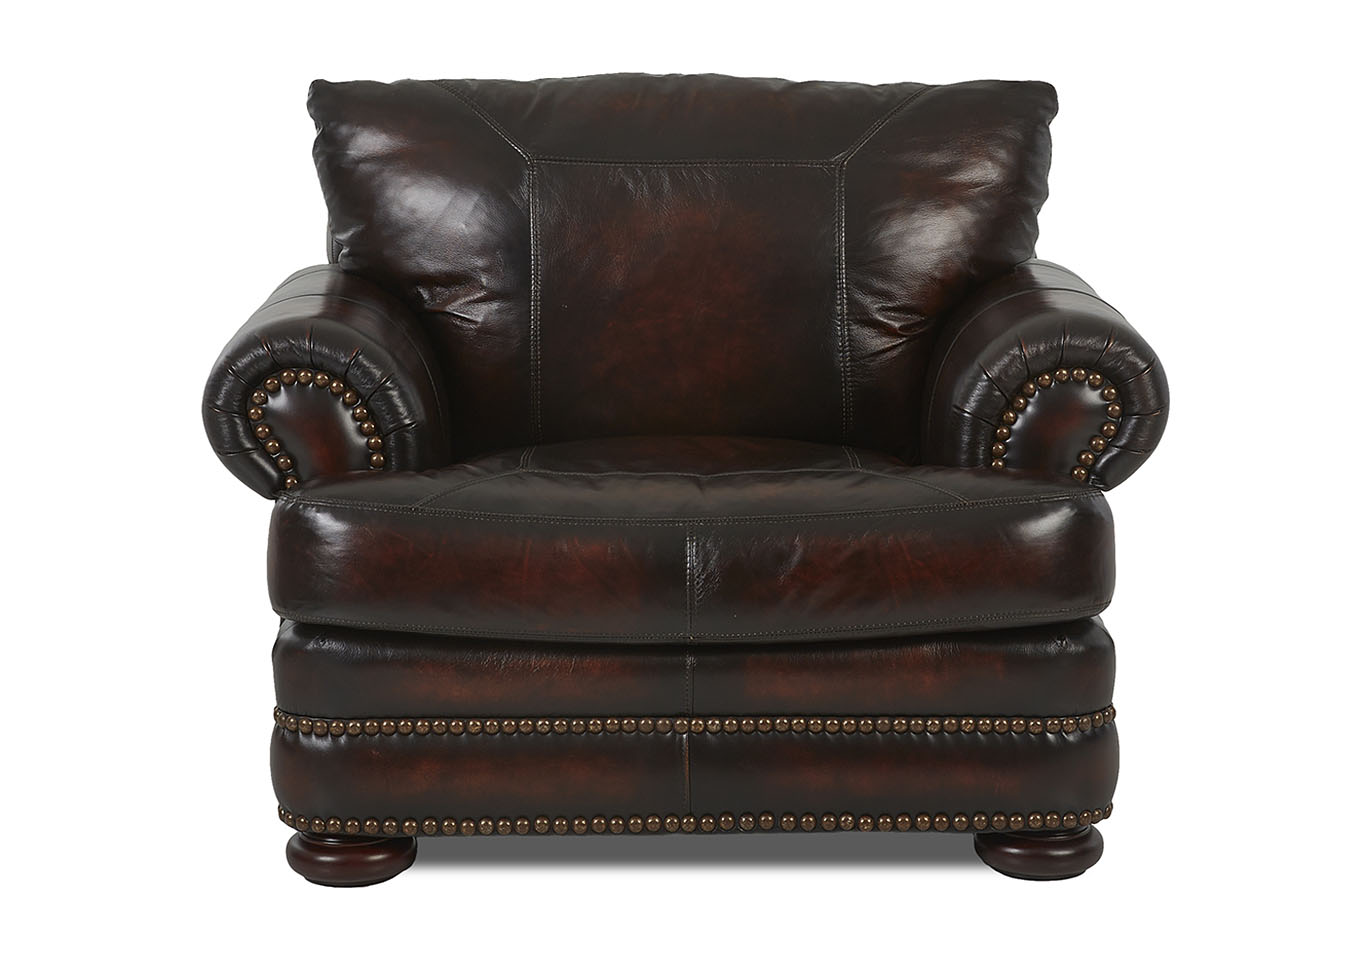 Montezuma Leather Stationary Chair,Klaussner Home Furnishings